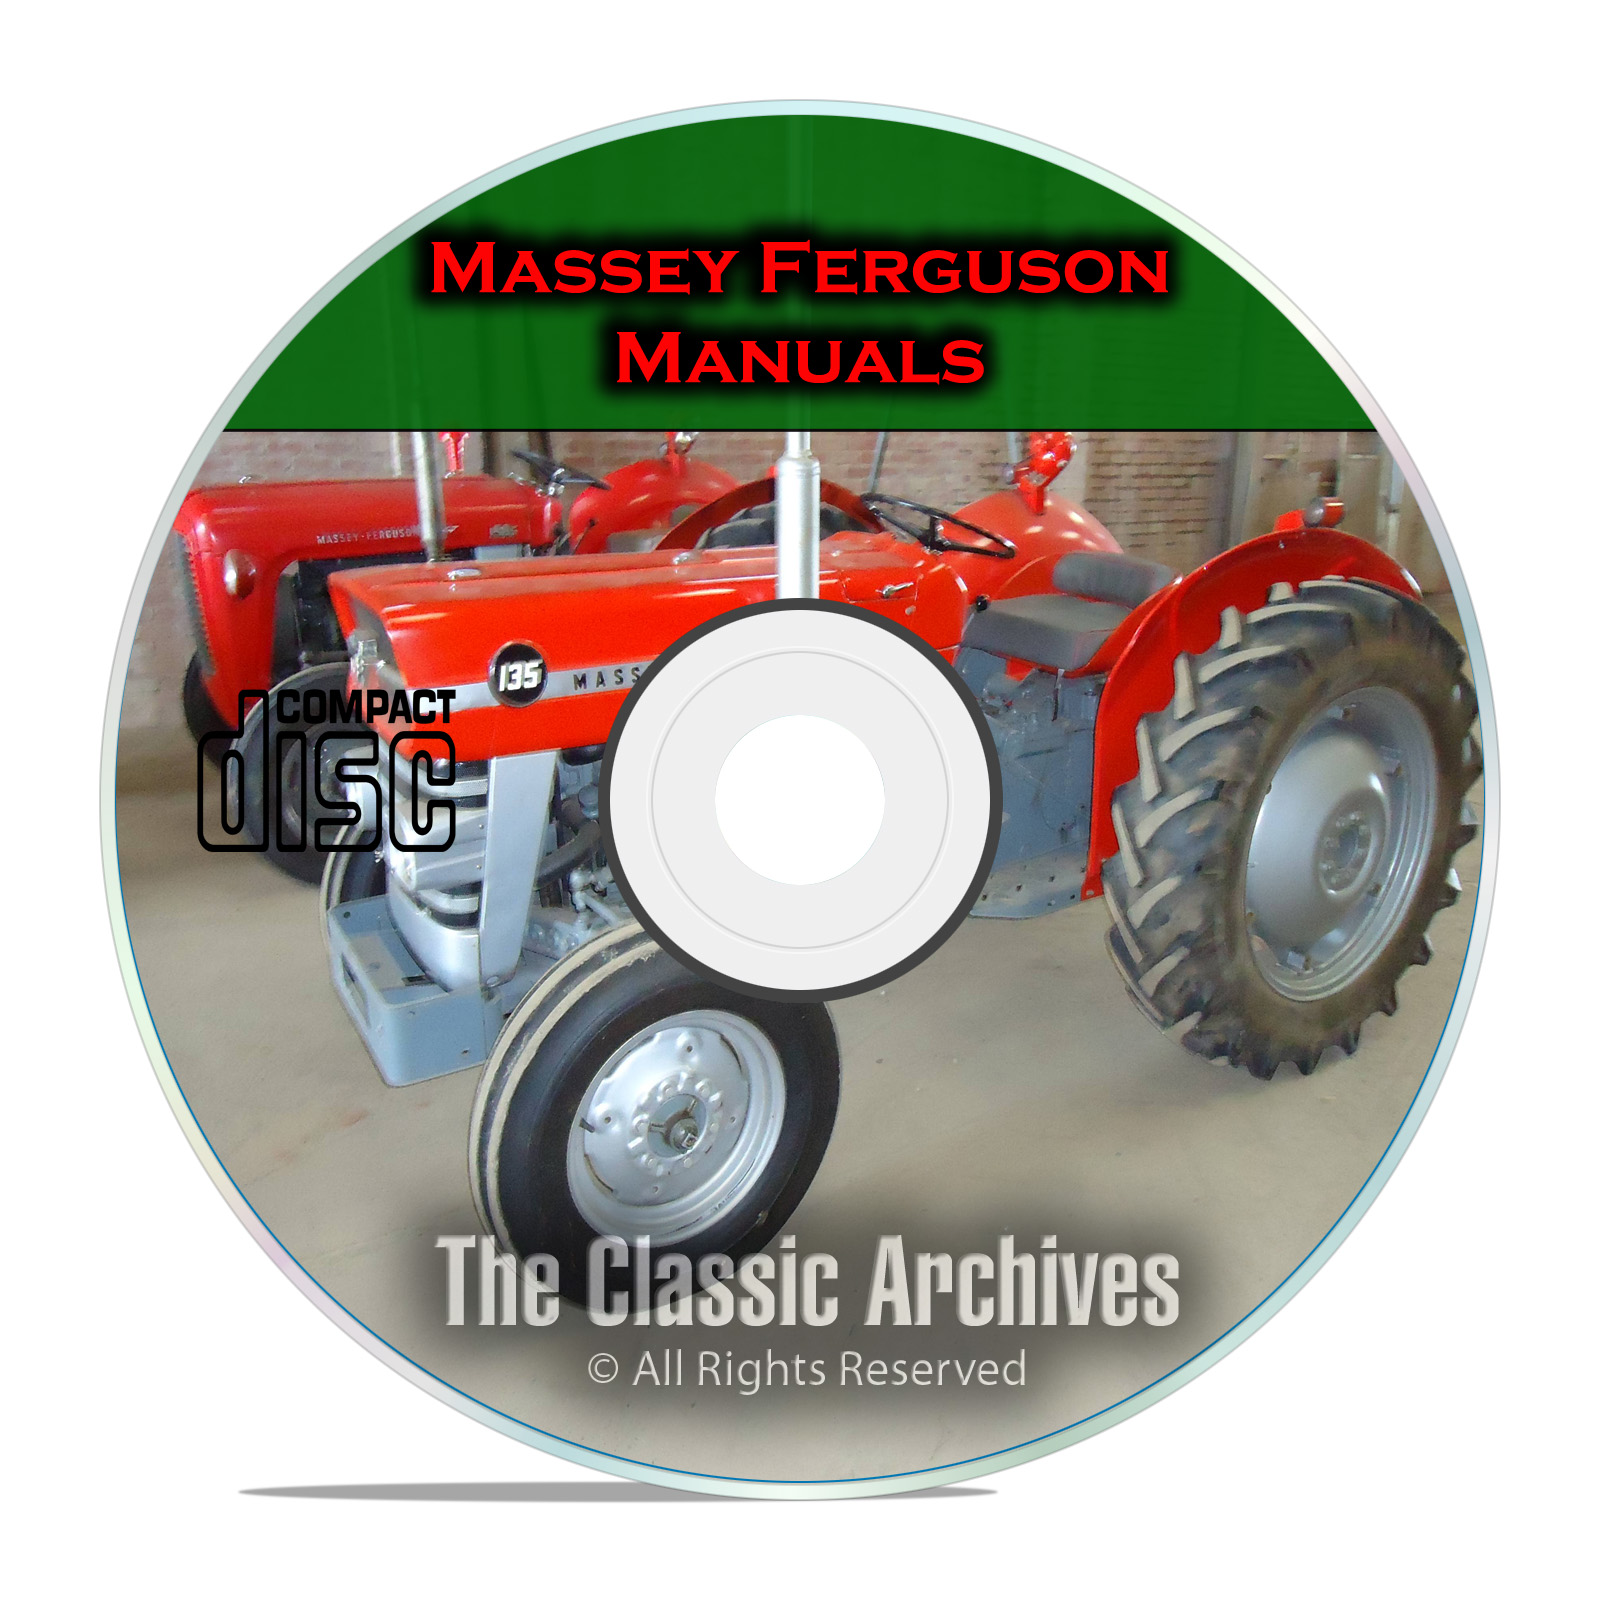 Massey Ferguson Shop Service Manuals, MF35 MF135, MF150, MF165, 34 total CD